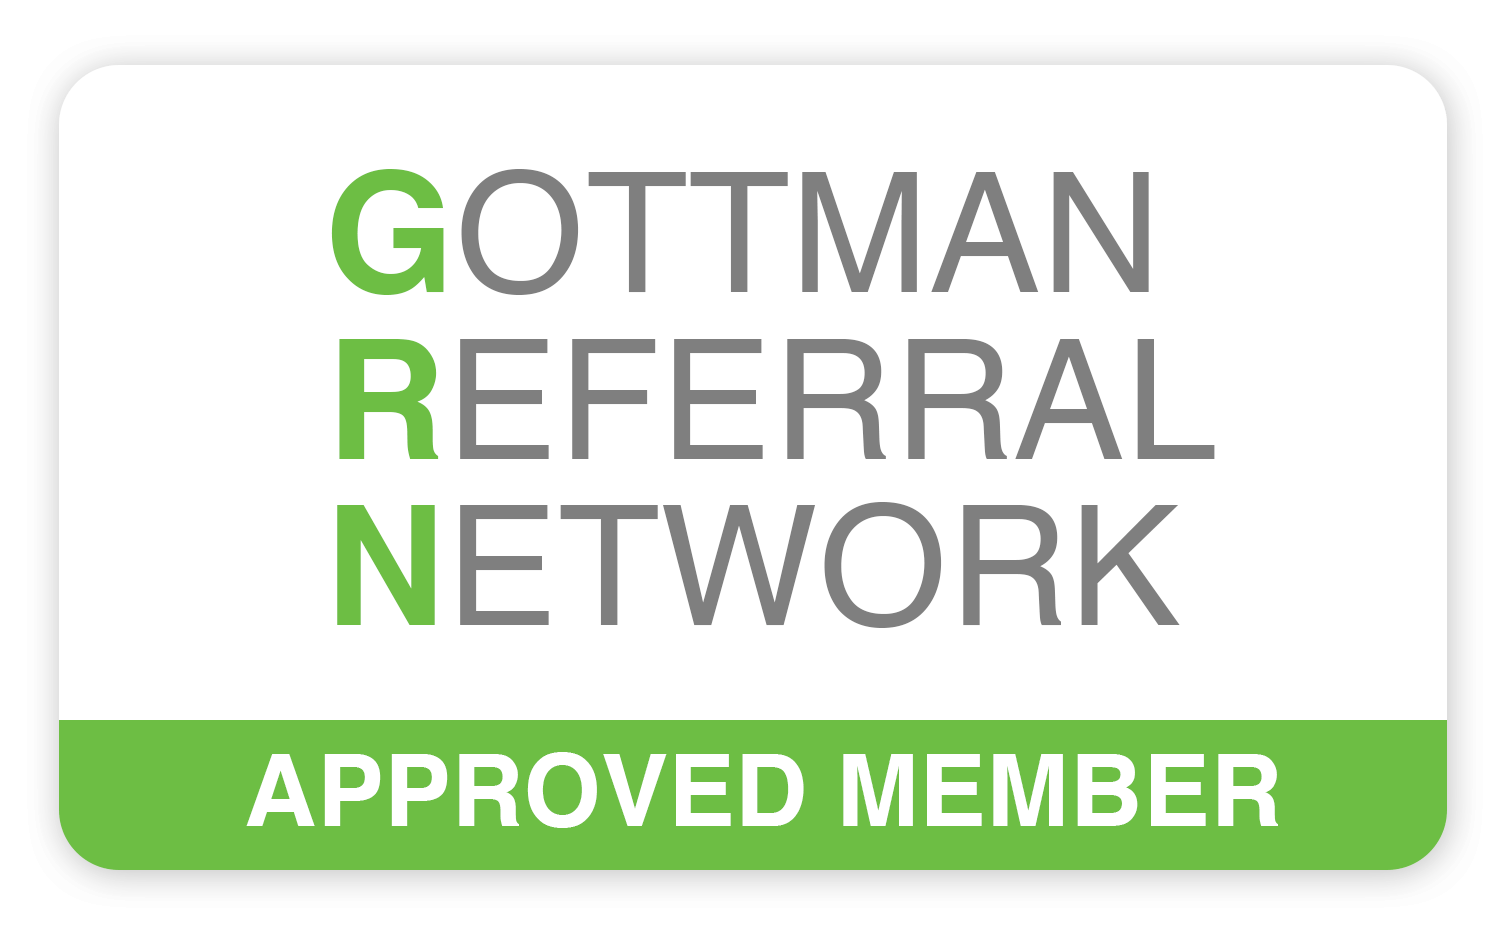 Ginger Paskowitz's profile on the Gottman Referral Network